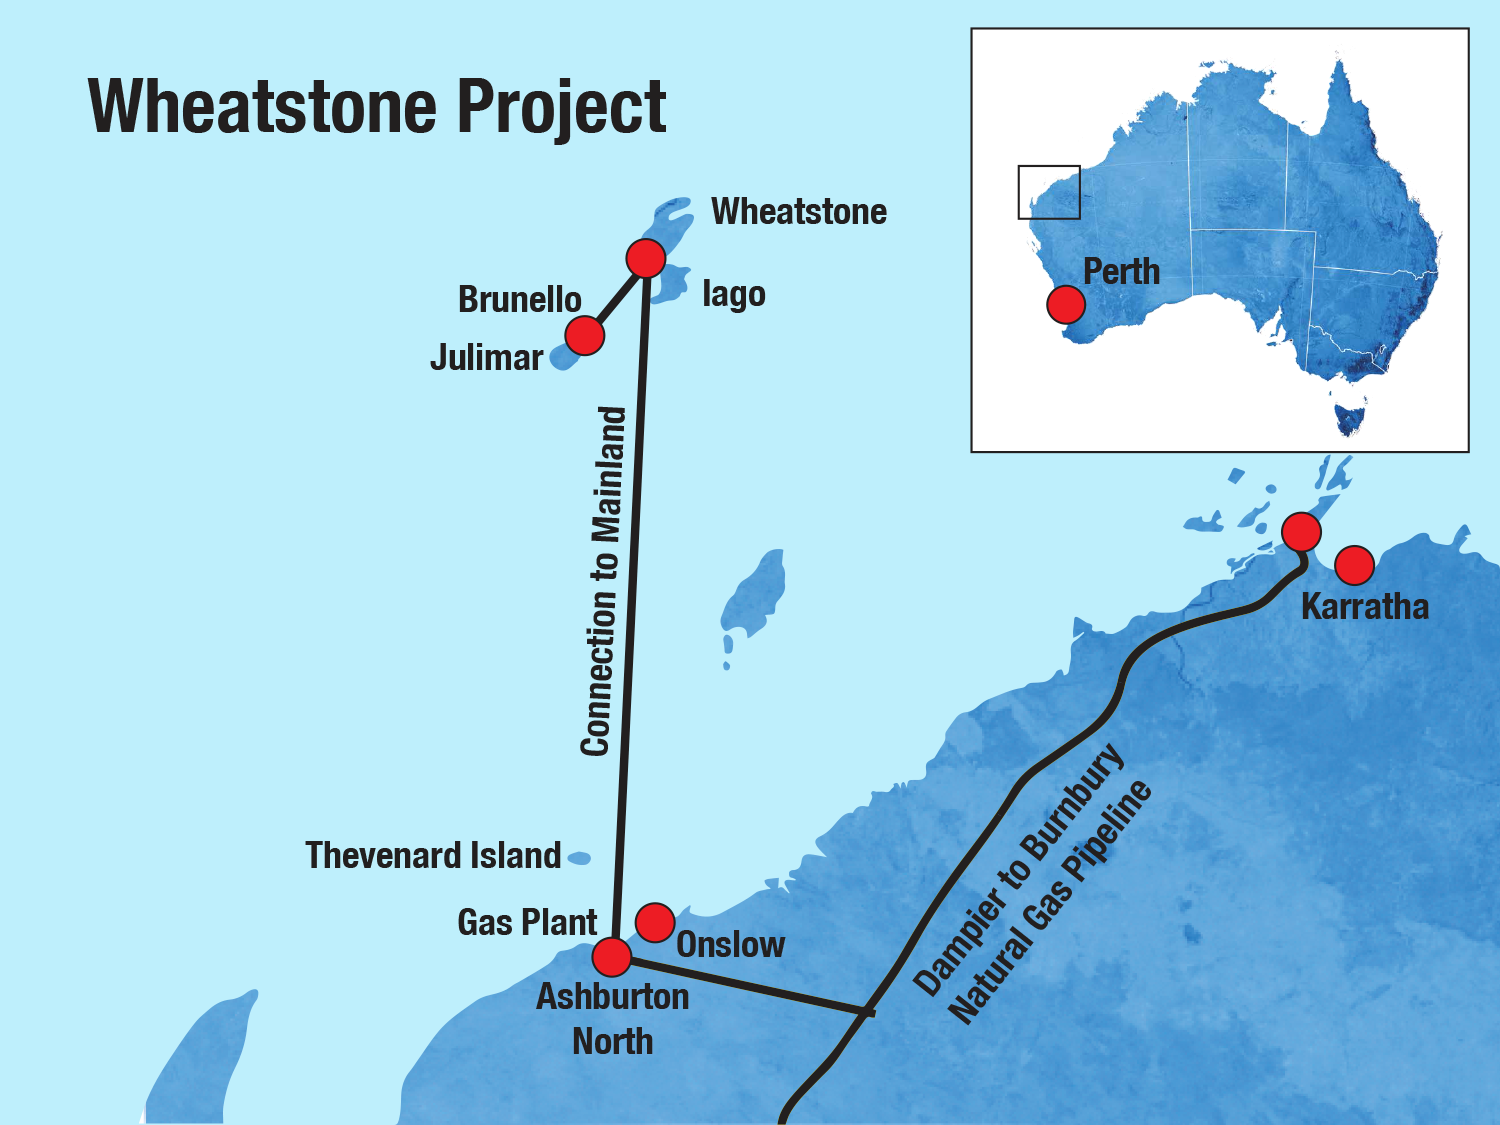 ATCO secures additional A$130m deal for Wheatstone LNG Project